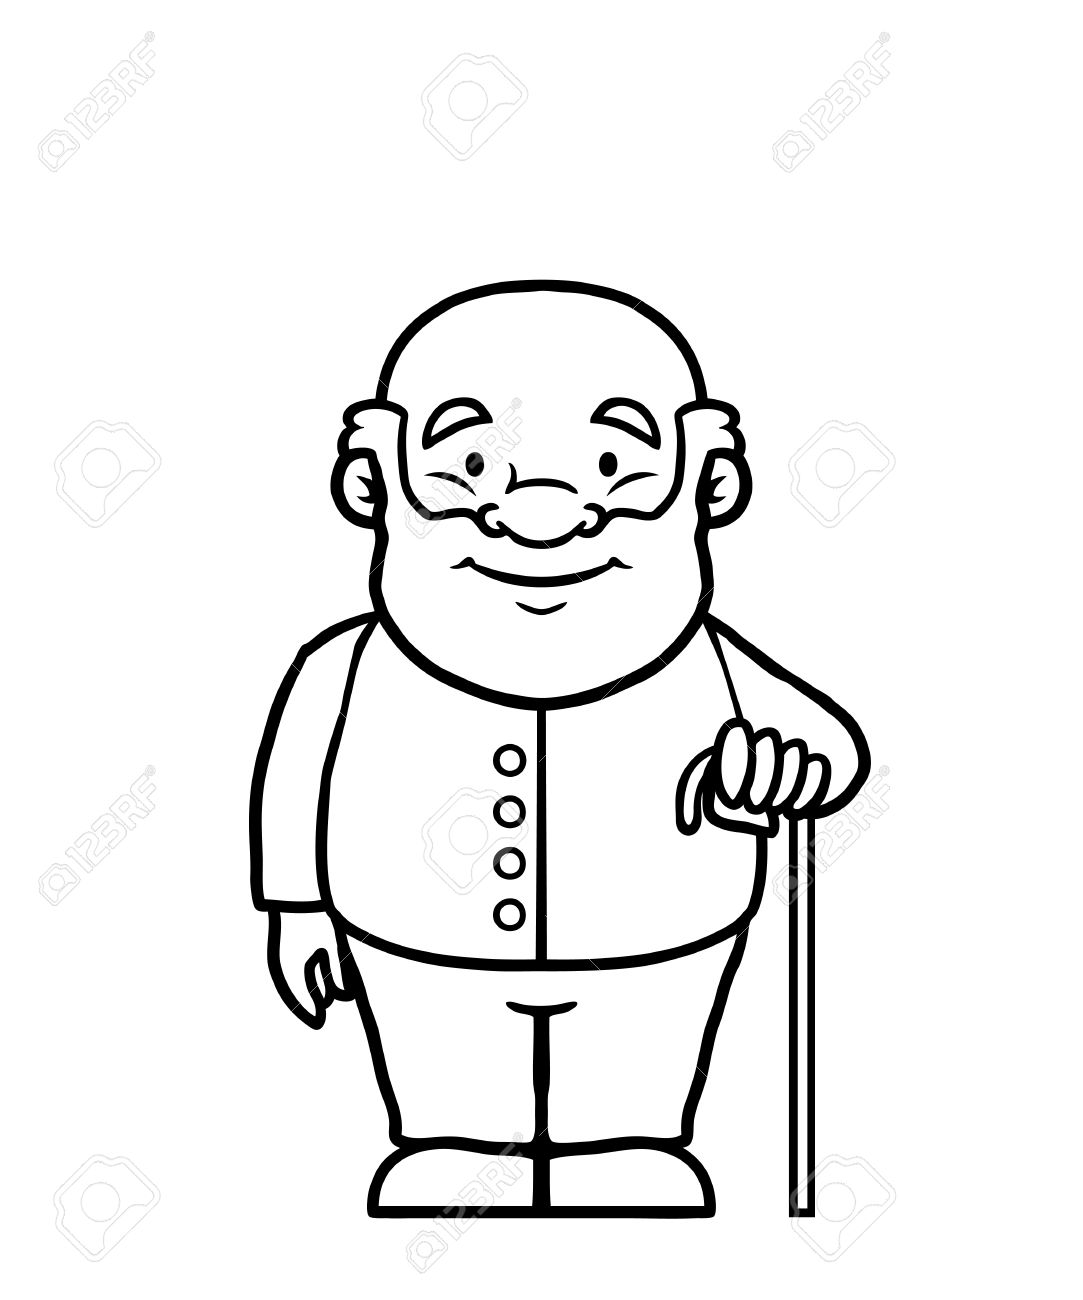 Black and white old man holding a cane and smiling stock vector 23476044